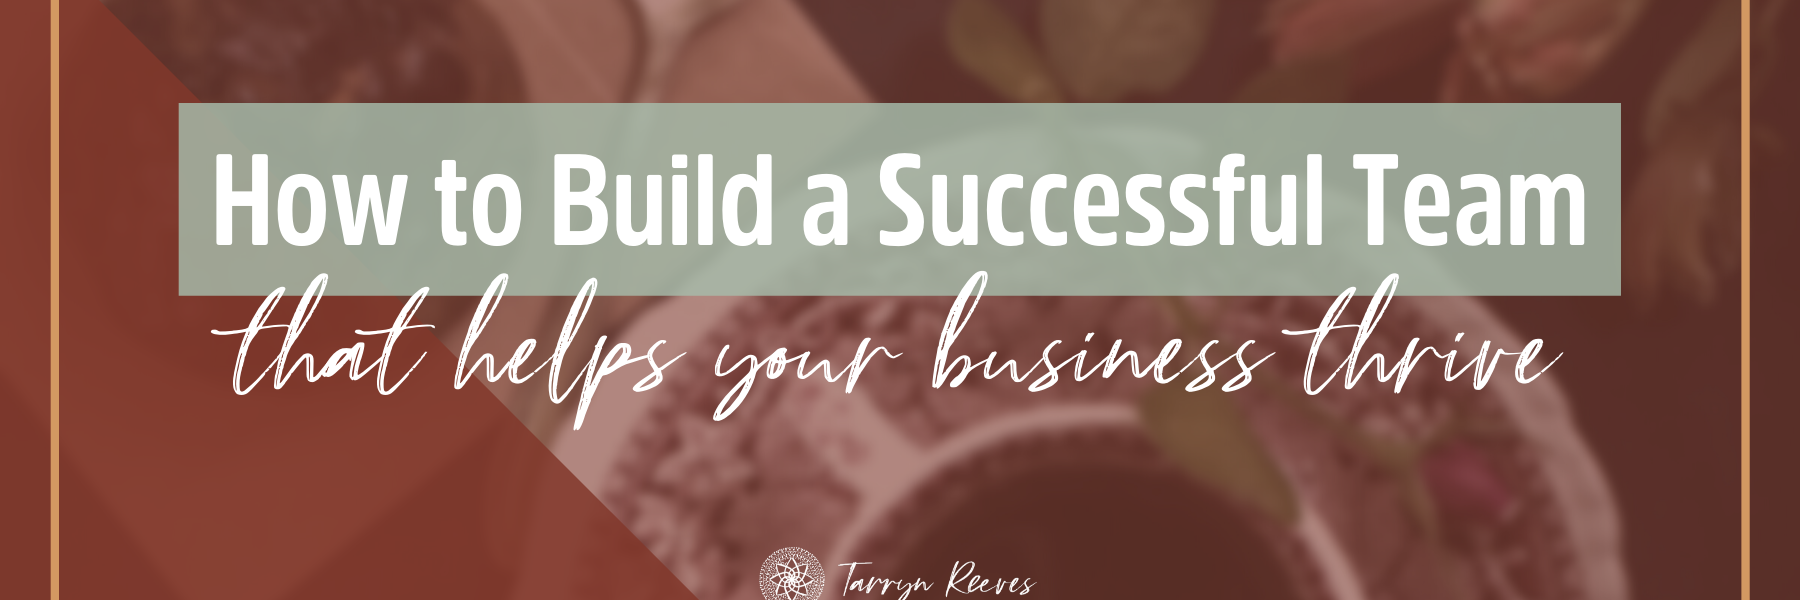 How To Build A Successful Team That Helps Your Business Thrive